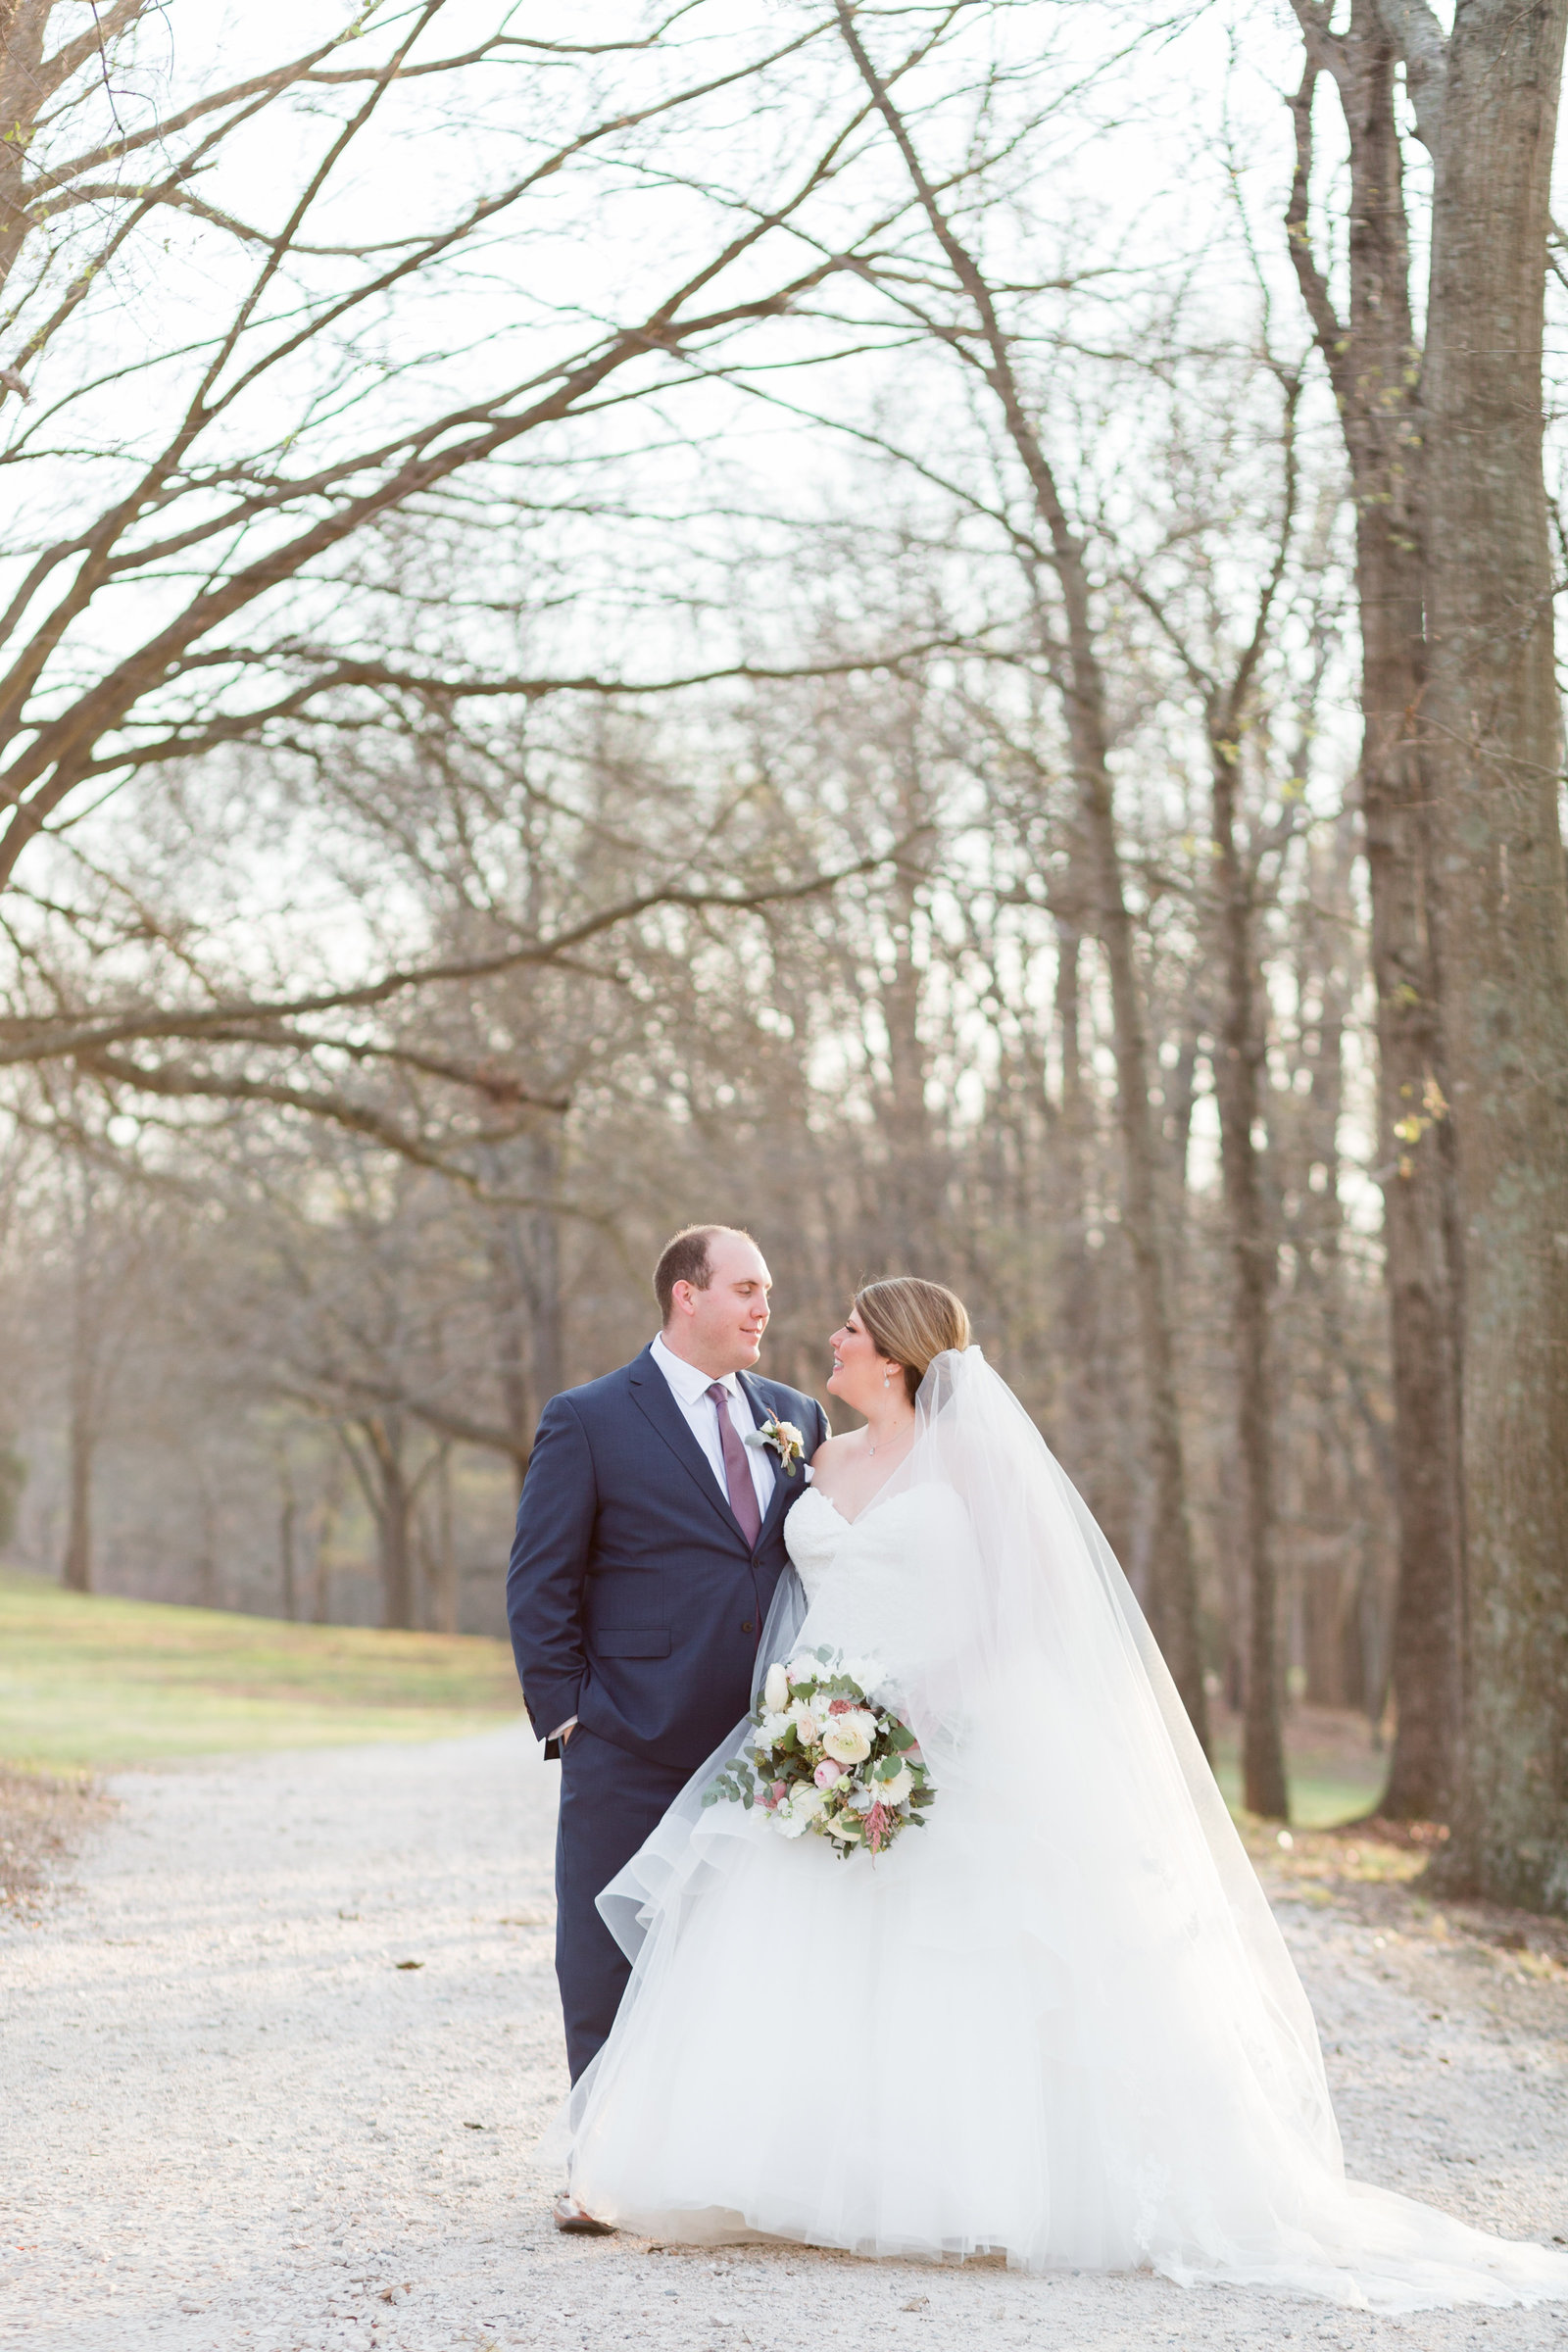 Stacy and Michael Married-Samantha Laffoon Photography-151